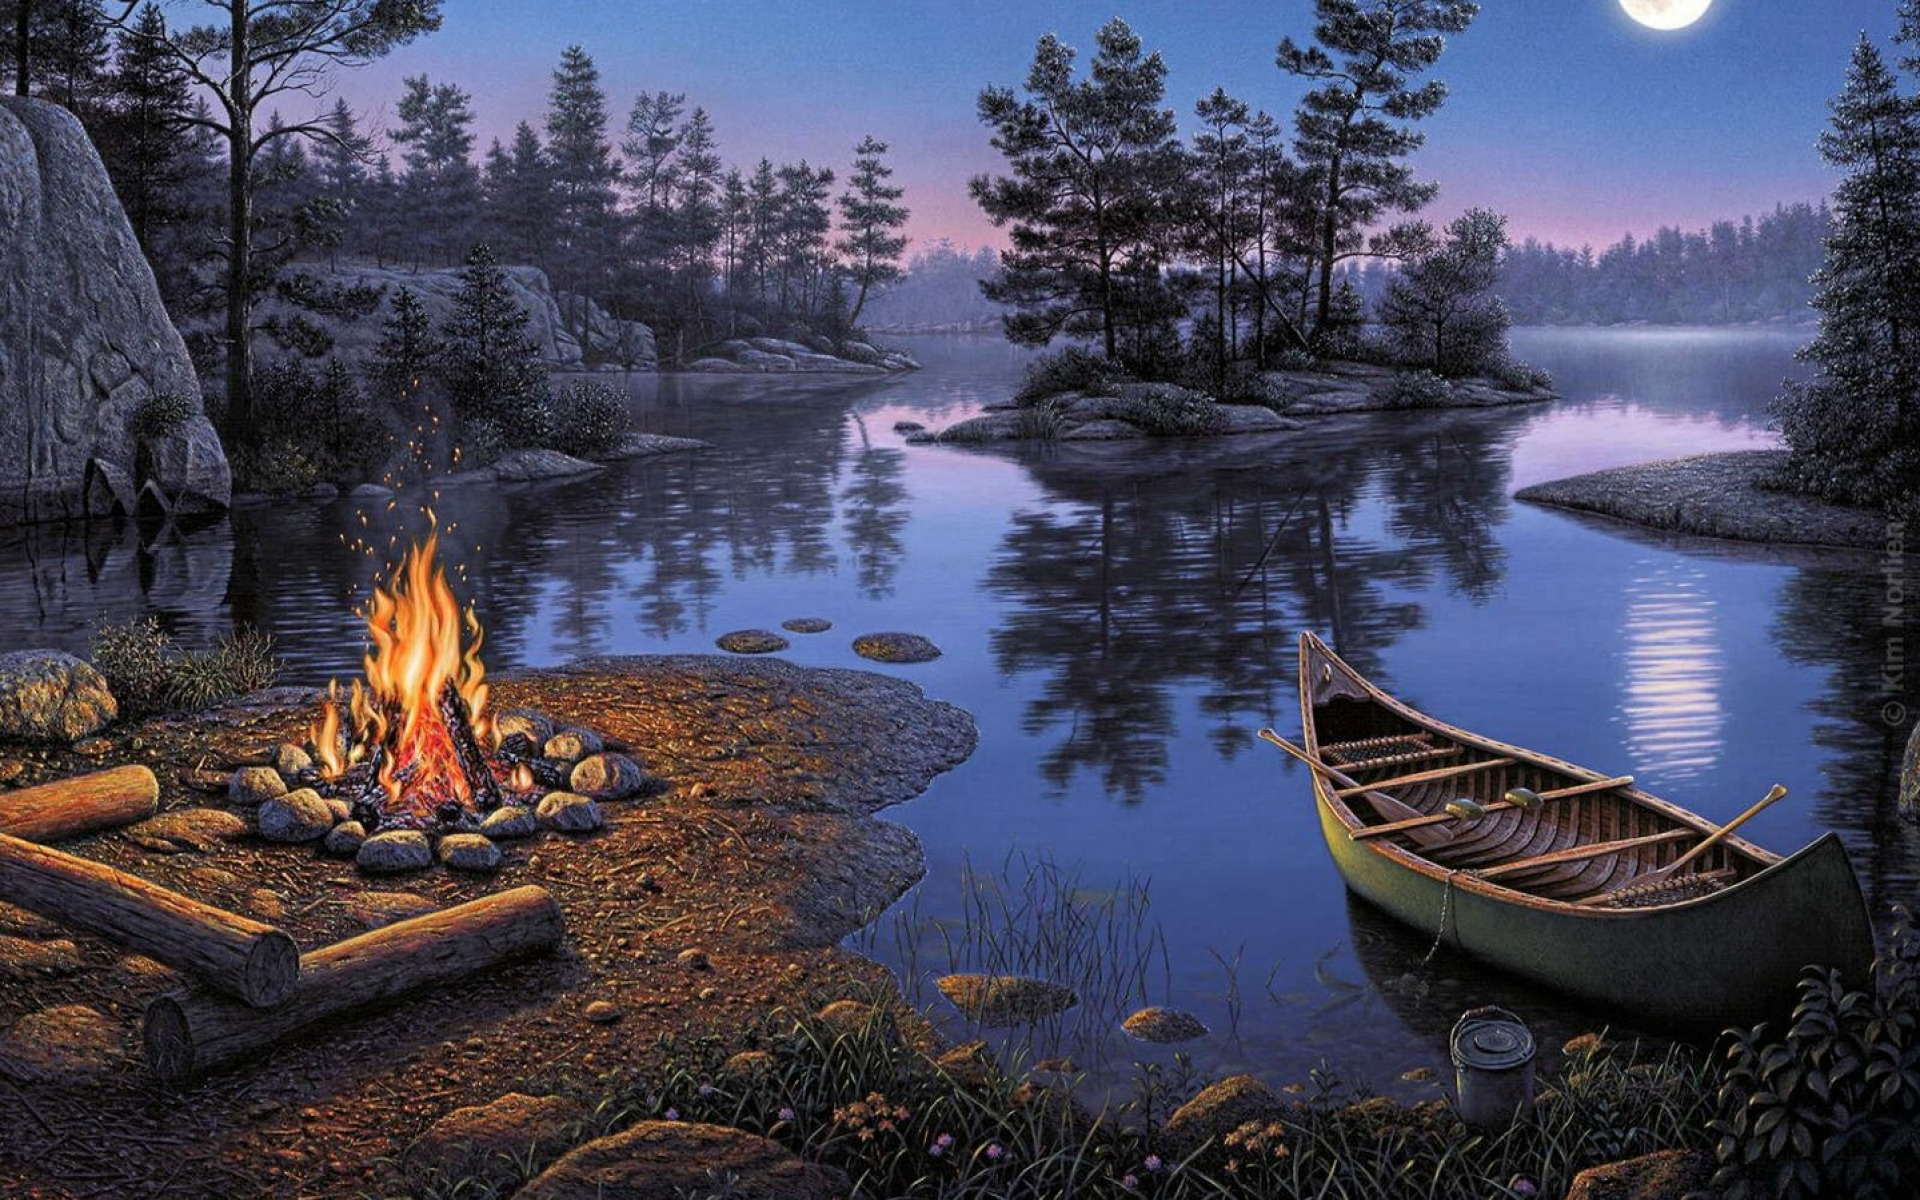 Lake Boat Trees Camp Fire Dark wallpapers Lake Boat Trees Camp 1920x1200